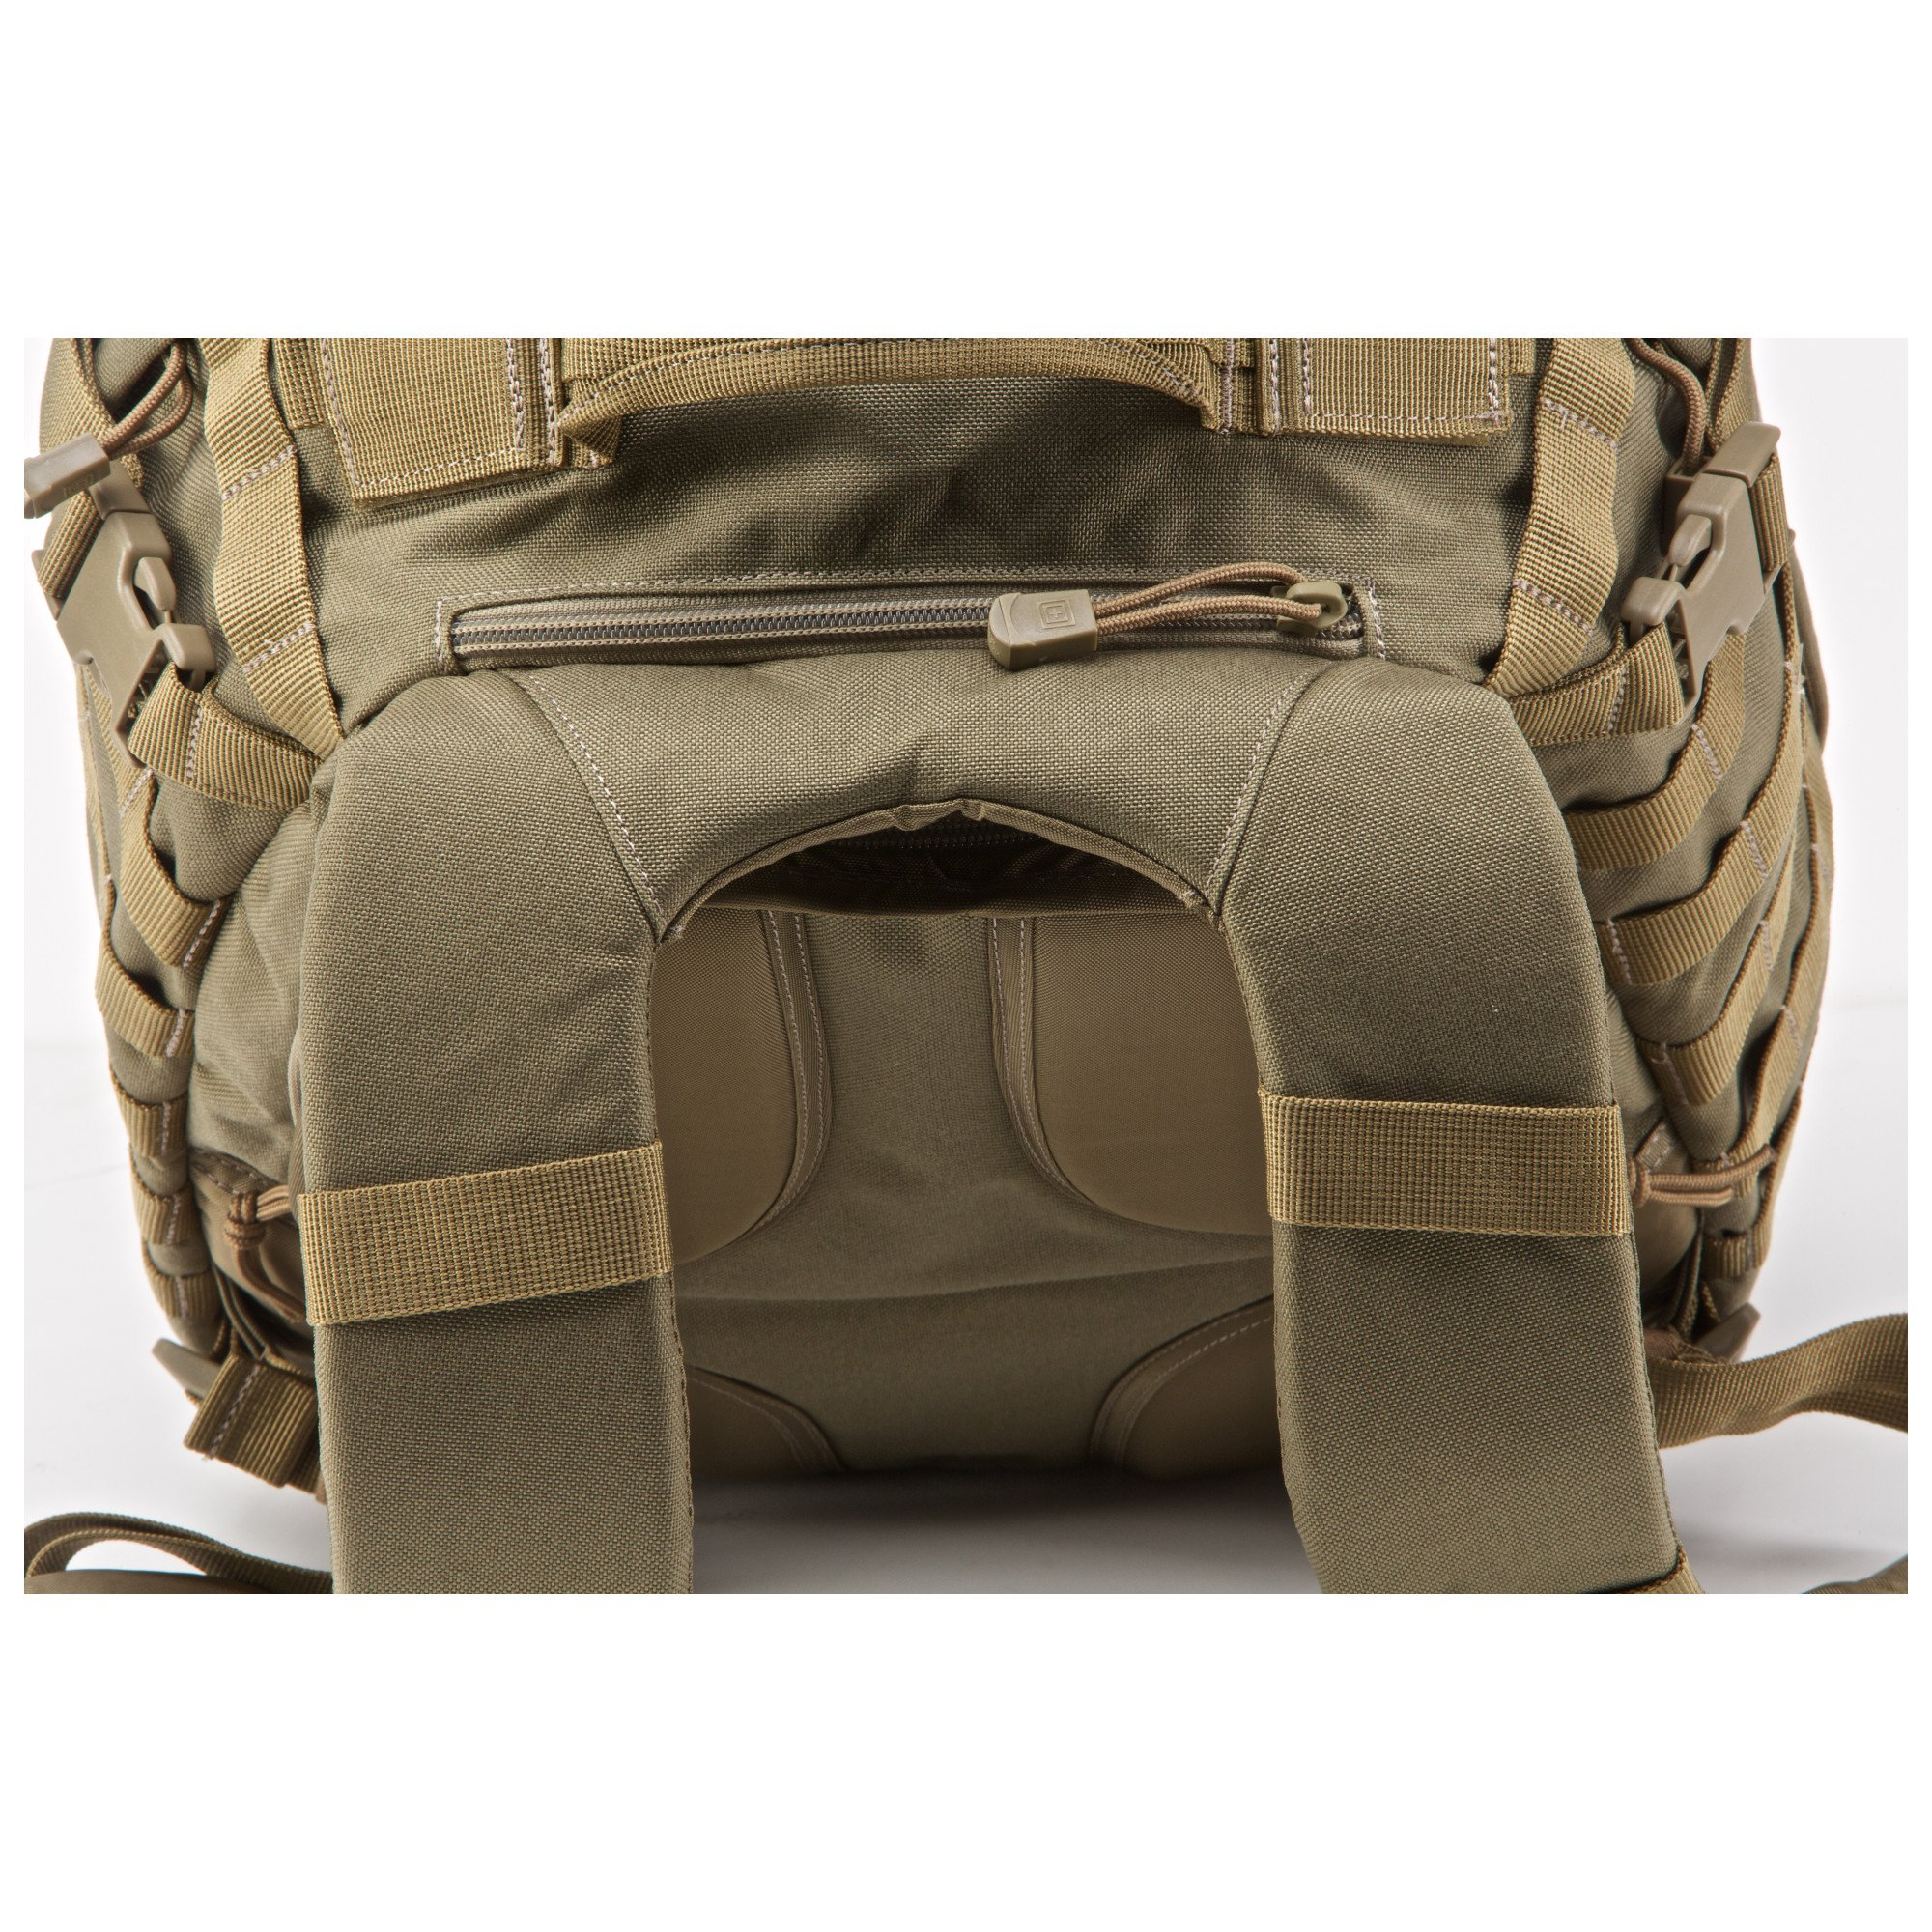 5.11 RUSH12 Tactical Military Assault Molle Backpack, Bug Out Rucksack Bag, Small, Style 56892, Sandstone by 5.11 (Image #7)